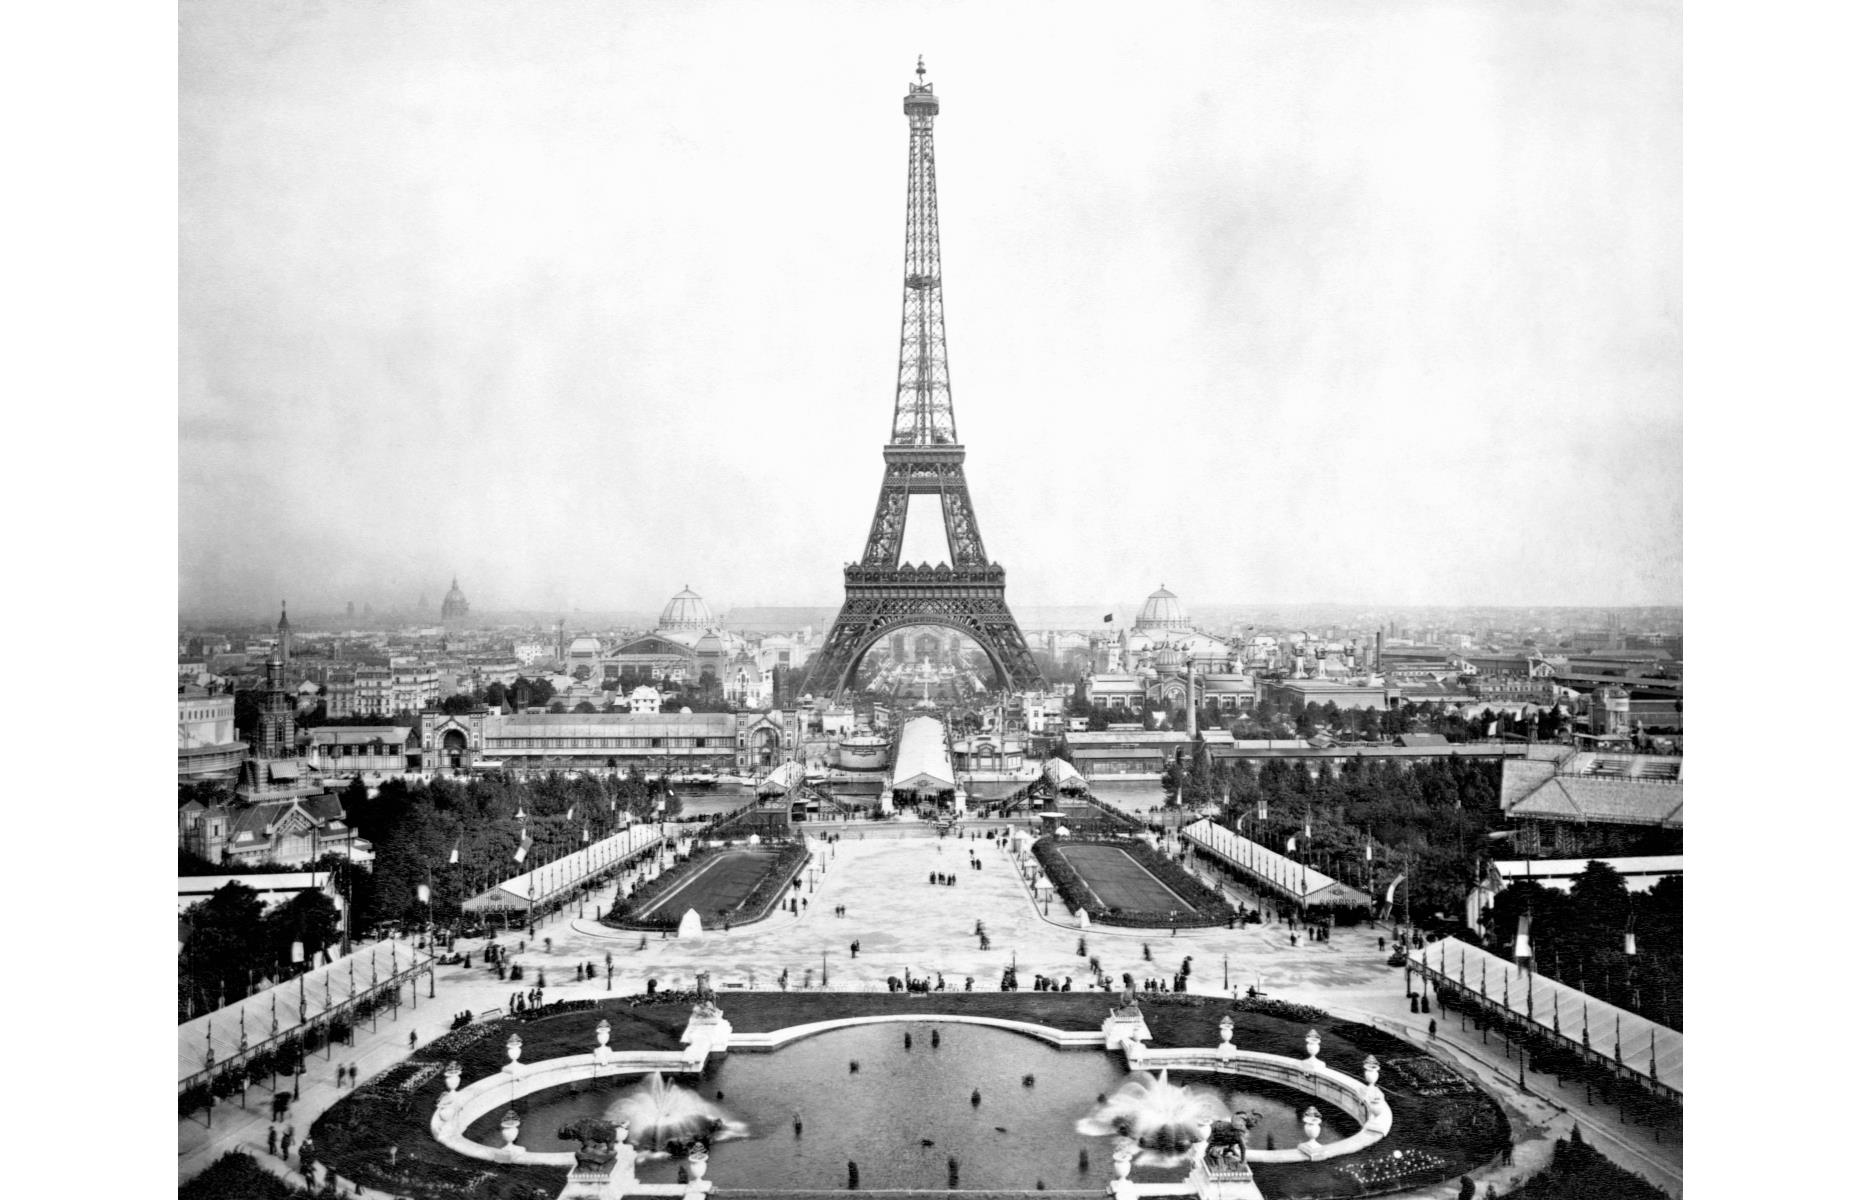 Slide 7 of 51: The most recognizable feature of the Paris skyline was built between 1887 and 1889, completed in time for the Paris World's Fair of 1889 – although it was only supposed to be a temporary structure. Its original licensing rights were only set to last 20 years and it was almost torn down in 1909, but city officials voted to keep it after recognizing its value as a radio station. Pictured here in 1889, the Eiffel Tower now attracts around seven million visitors each year.